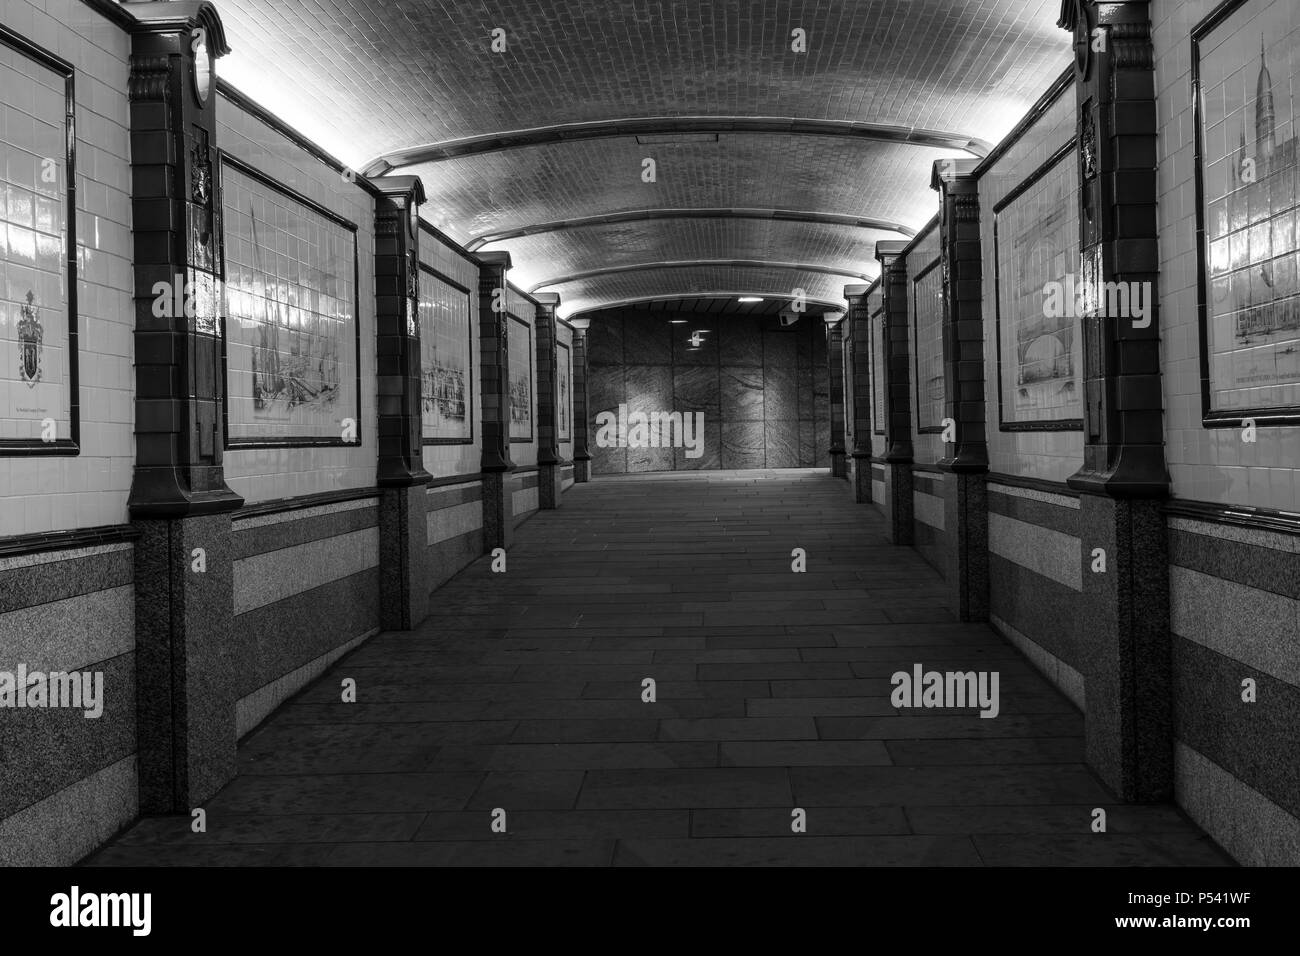 London Great Britain, October 12 2017, Empty tunnel at night,  Nice black and white image of architecture in the city - Stock Image